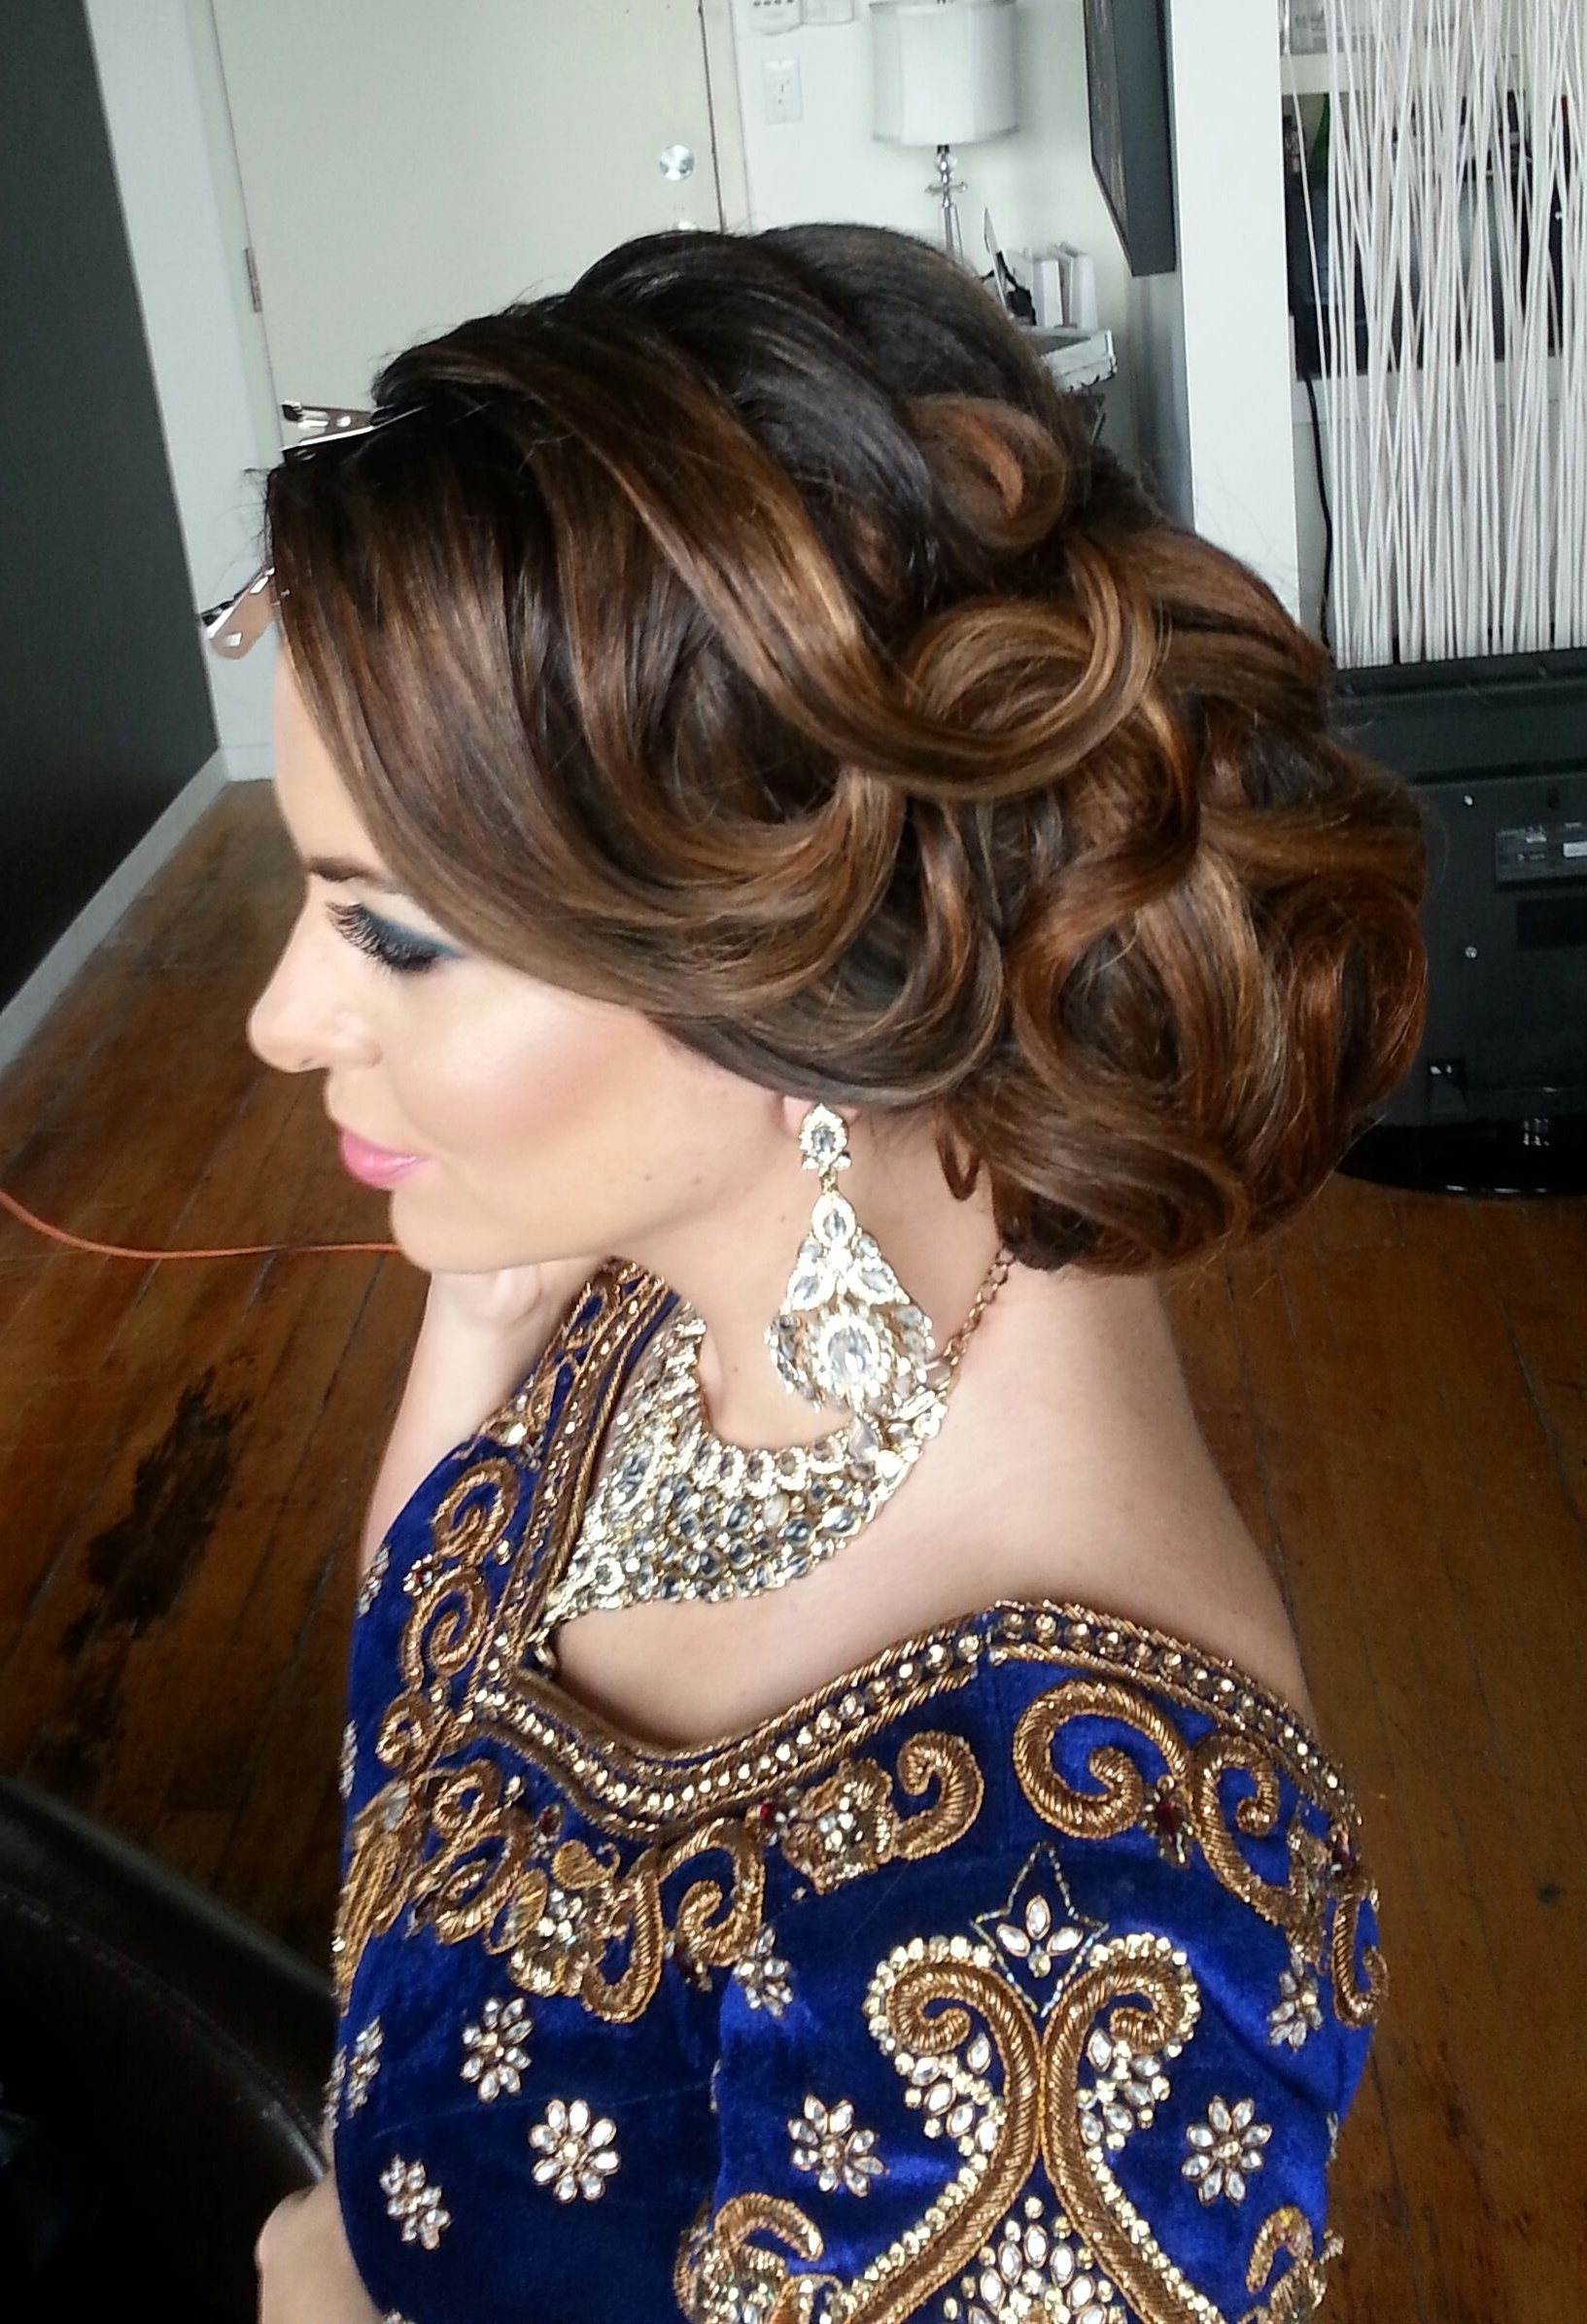 16 Glamorous Indian Wedding Hairstyles | Indian Wedding Hair, Updo Regarding Indian Updo Hairstyles (View 5 of 15)